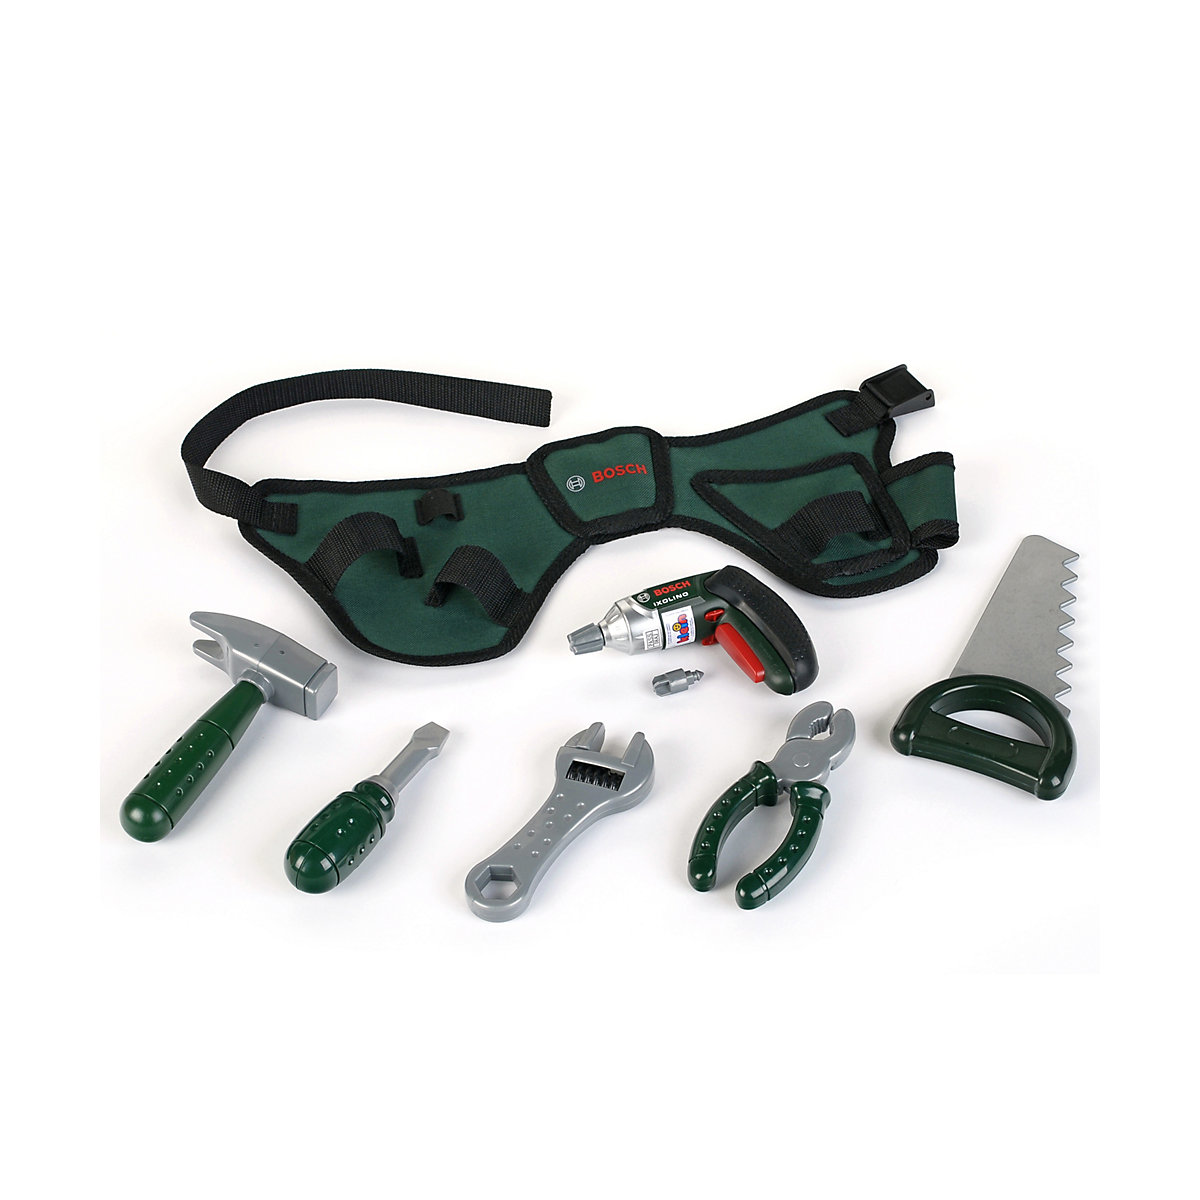 New ELC Boys and Girls Bosch Tool Belt Toy From 3 years - Dressing Up Gifts